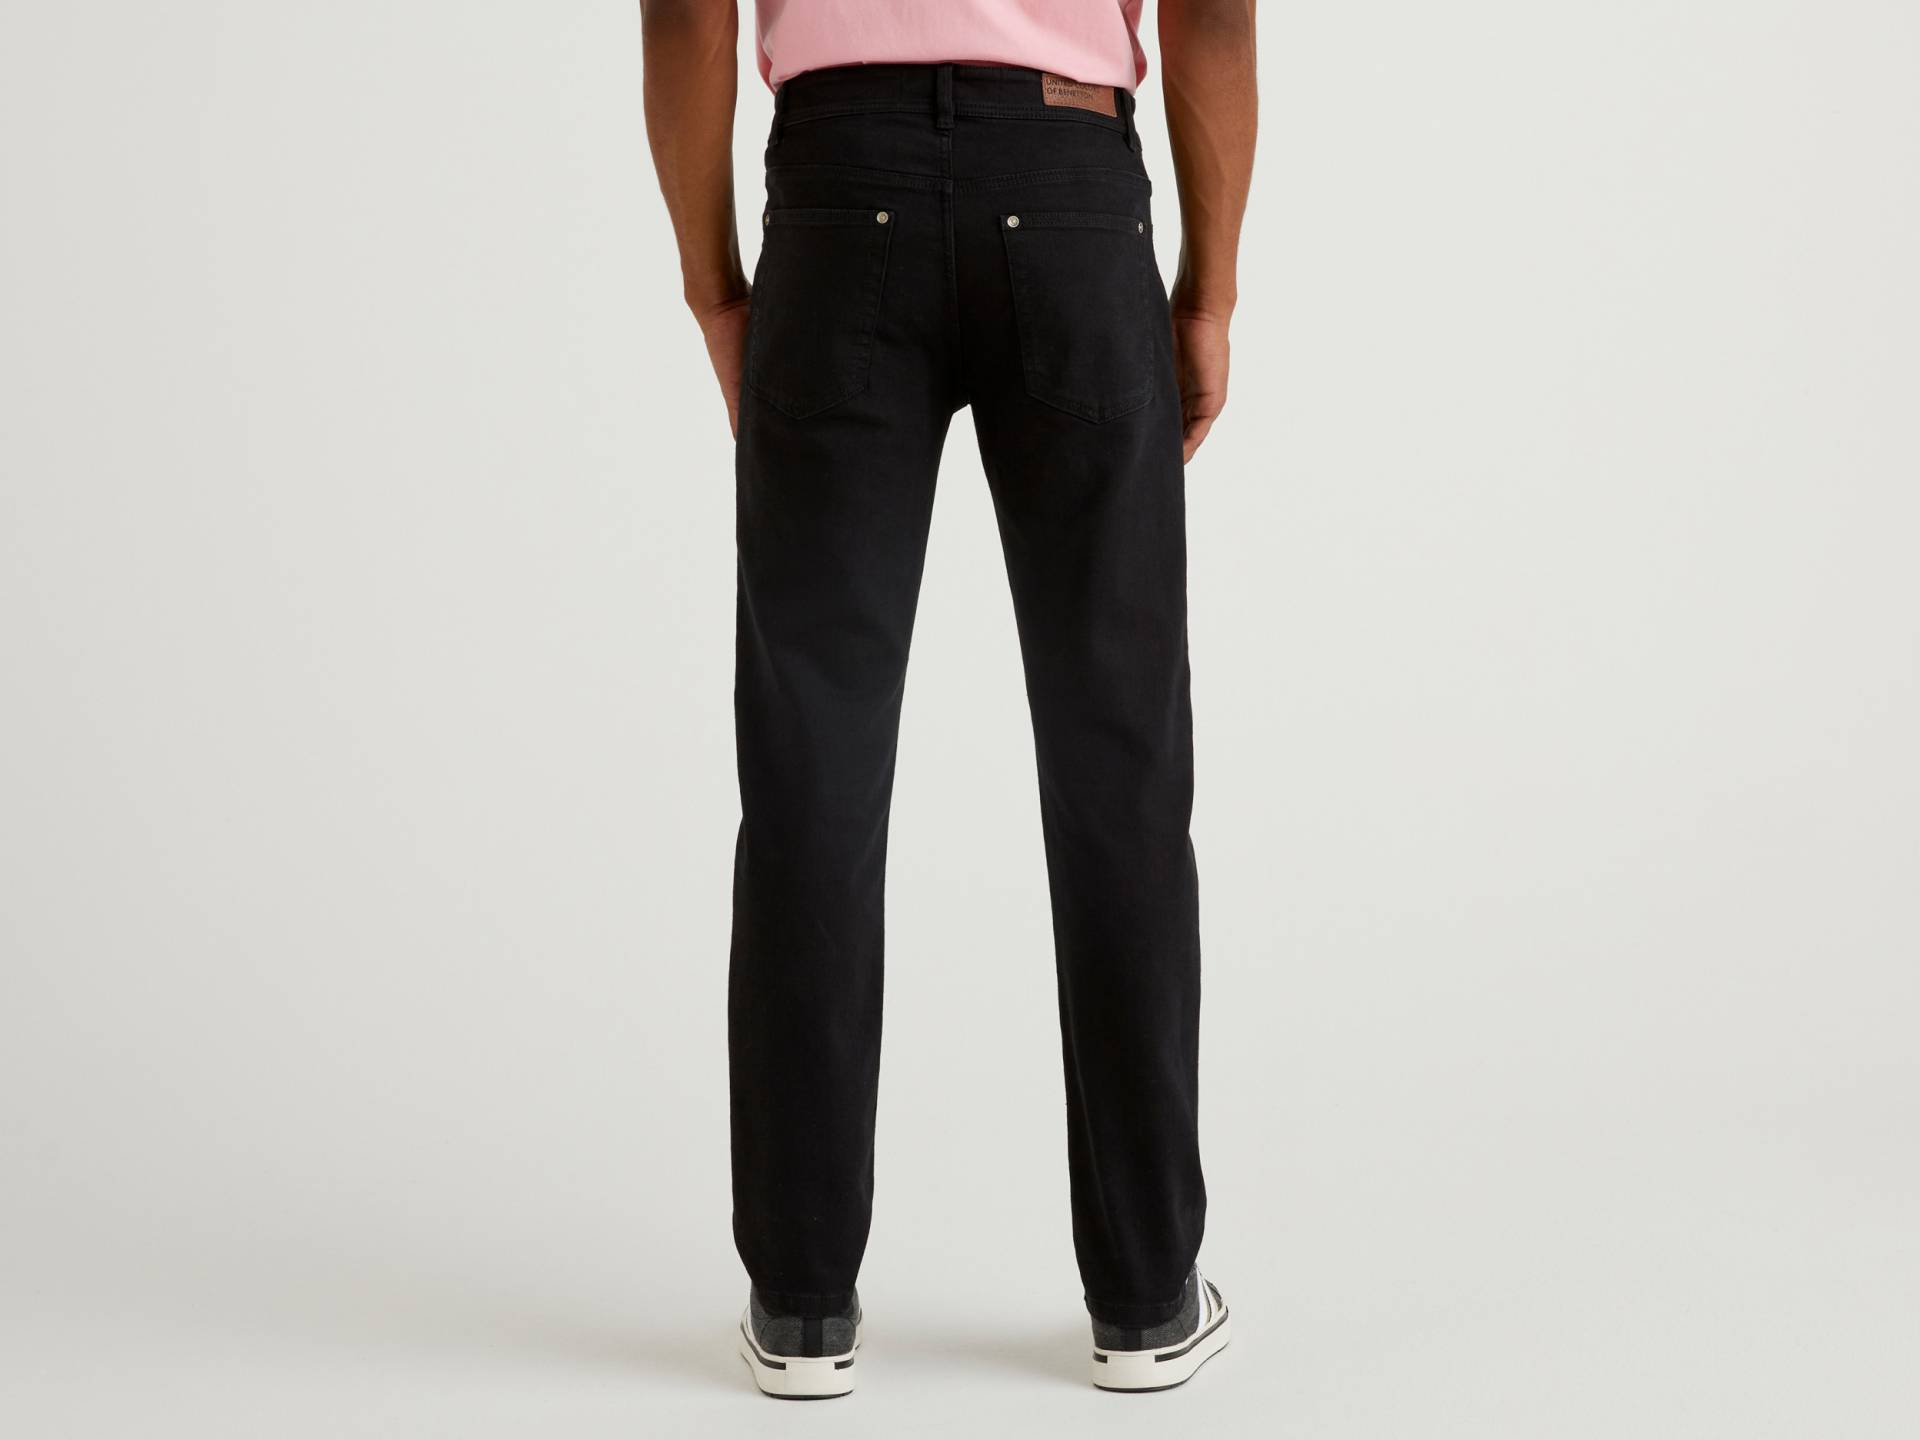 Benetton, Slim-fit-jeans, taglia 40, Schwarz, Herren von United Colors of Benetton